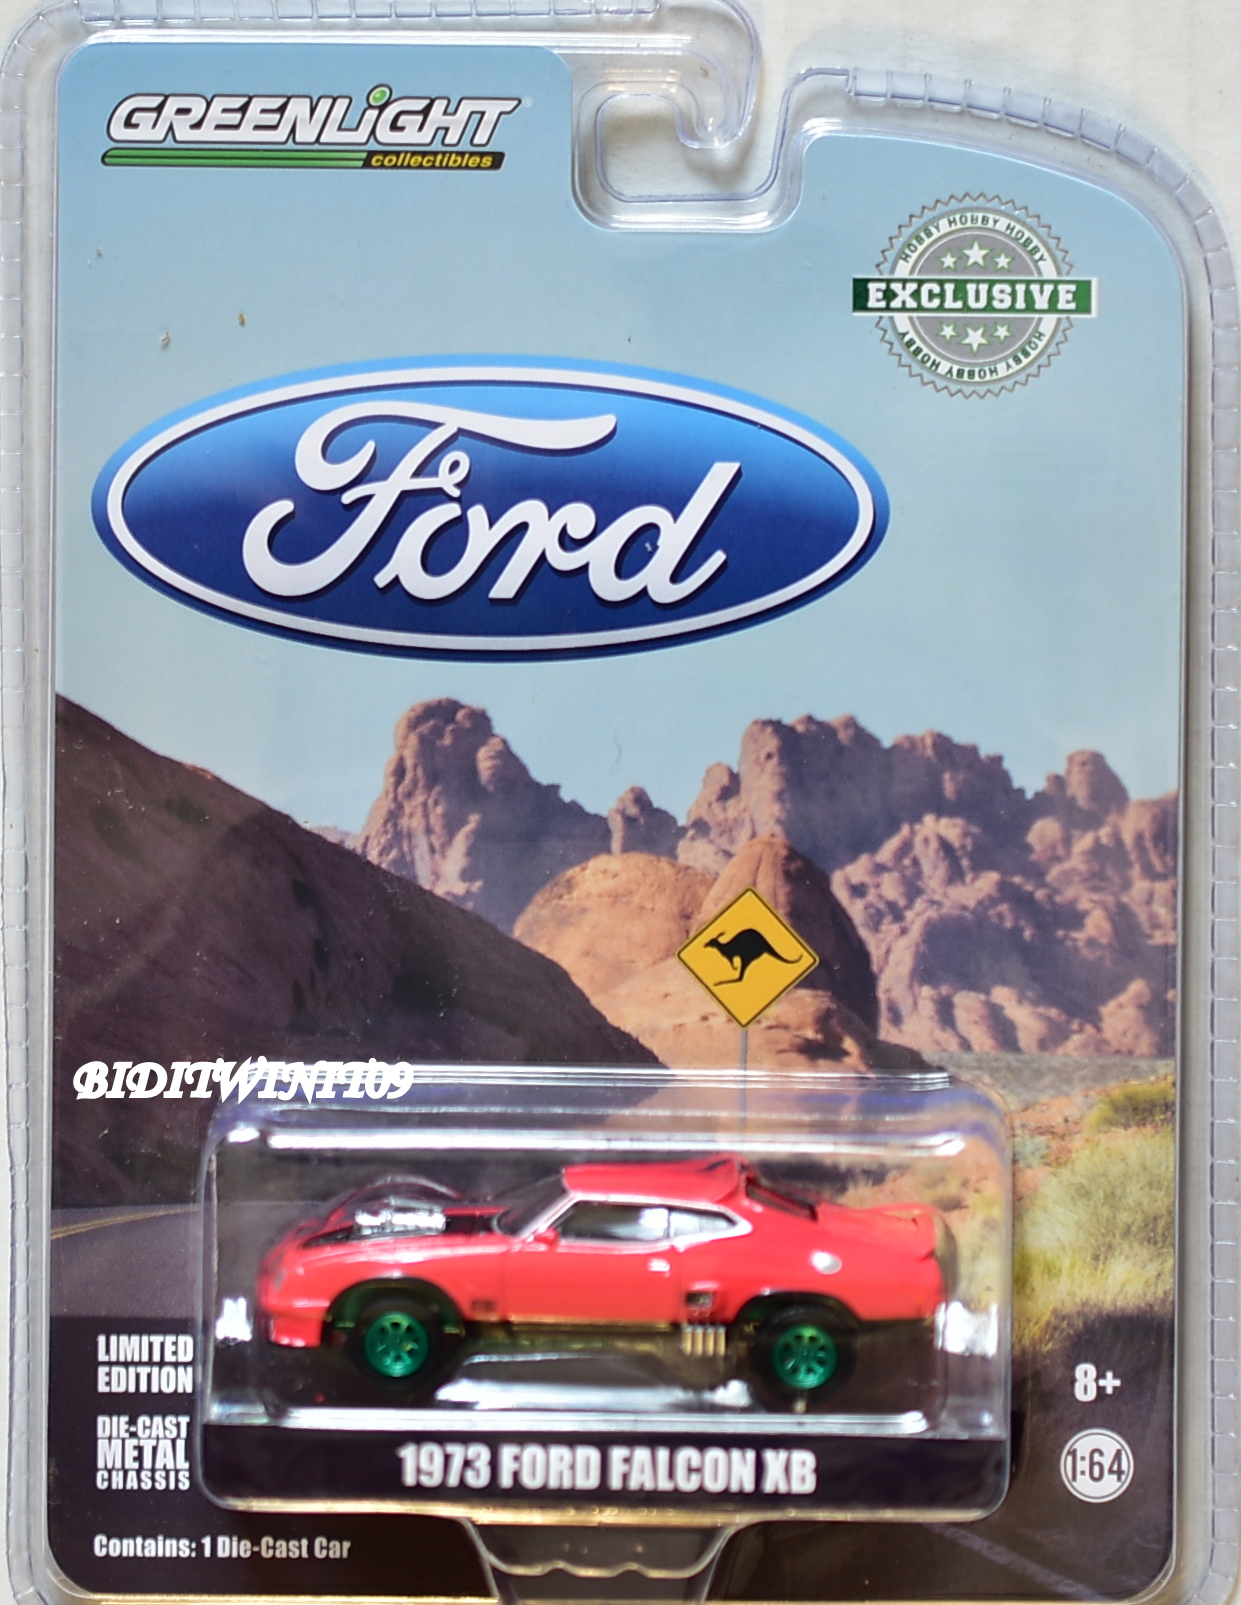 GREENLIGHT 2018 GREEN MACHINE HOBBY EXCLUSIVE 1973 FORD FALCON XB RED